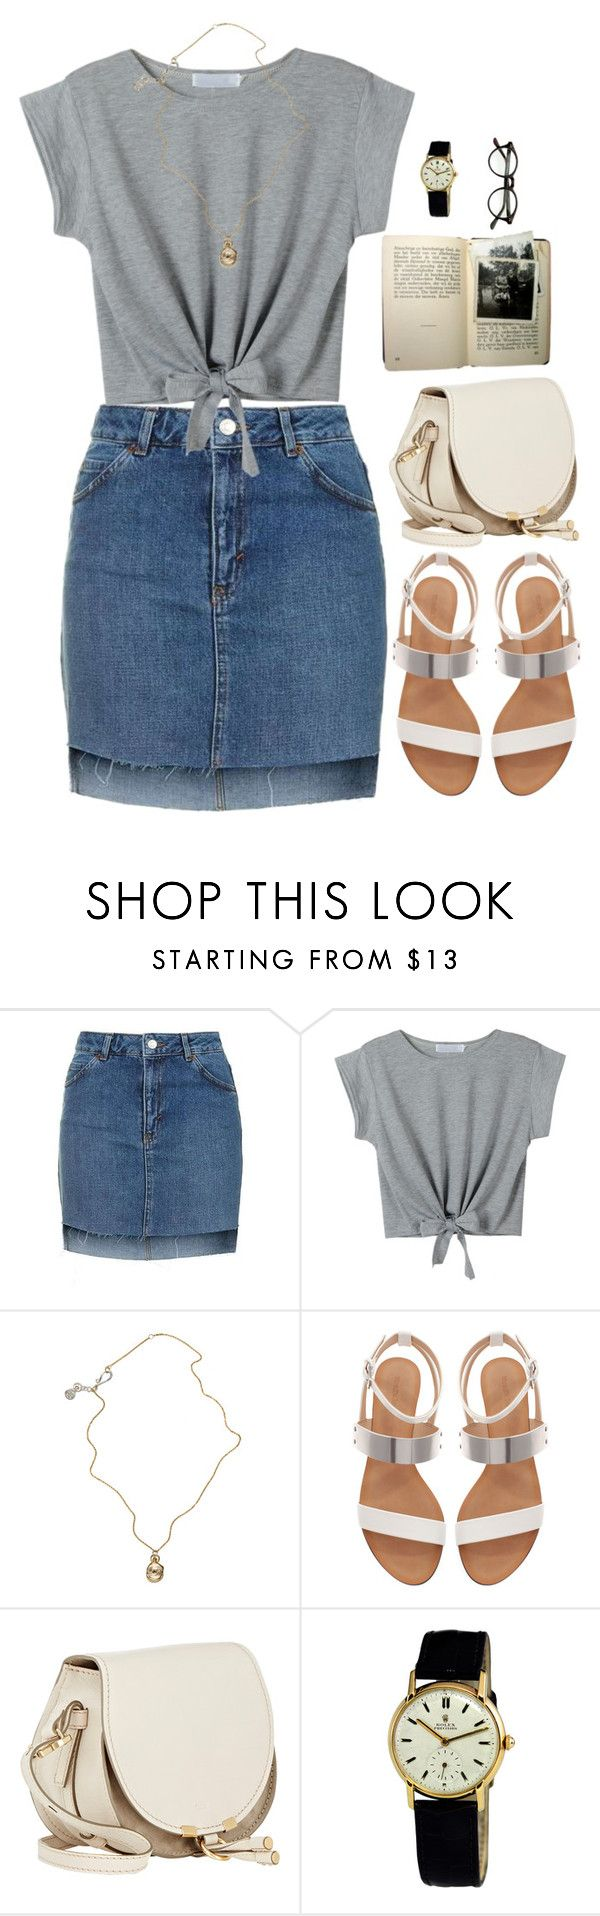 """""""Untitled #716"""" by michcouture on Polyvore featuring Topshop, WithChic, Jessica de Lotz Jewellery, Zara and Rolex"""